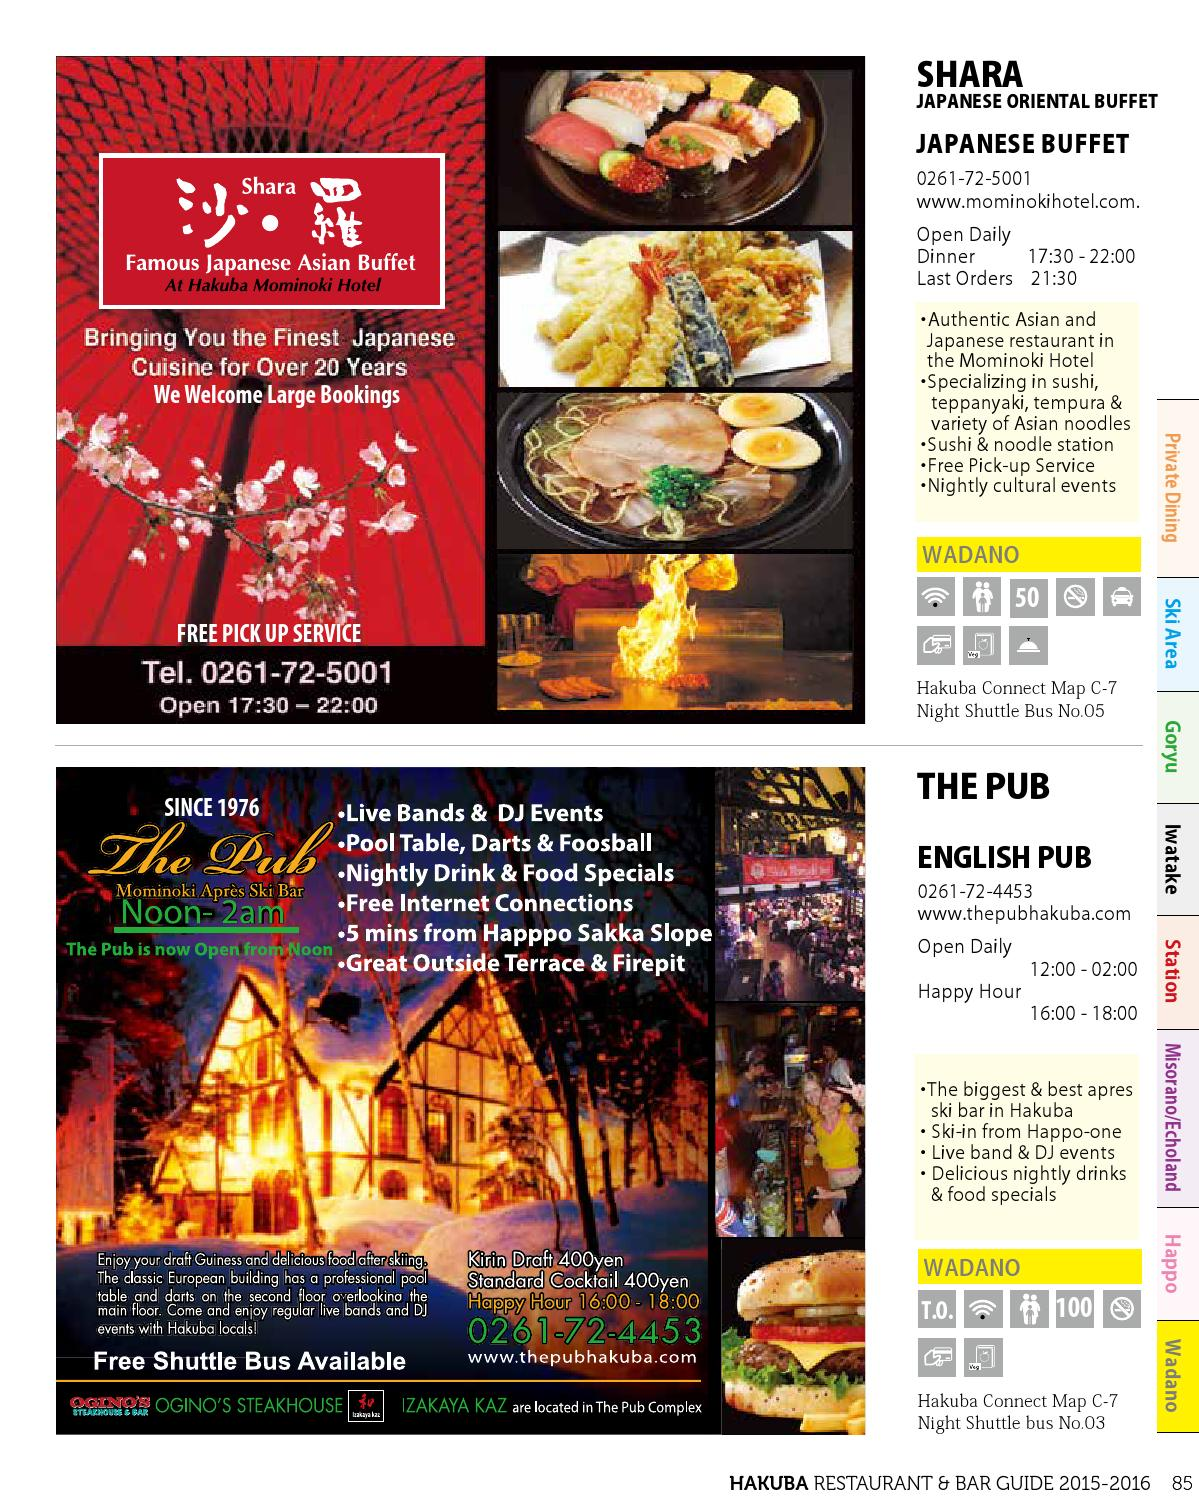 Hc Dining 2015 2016 By Snow Connections Issuu When you pick up the menu at a restaurant what's the first thing you look at? issuu